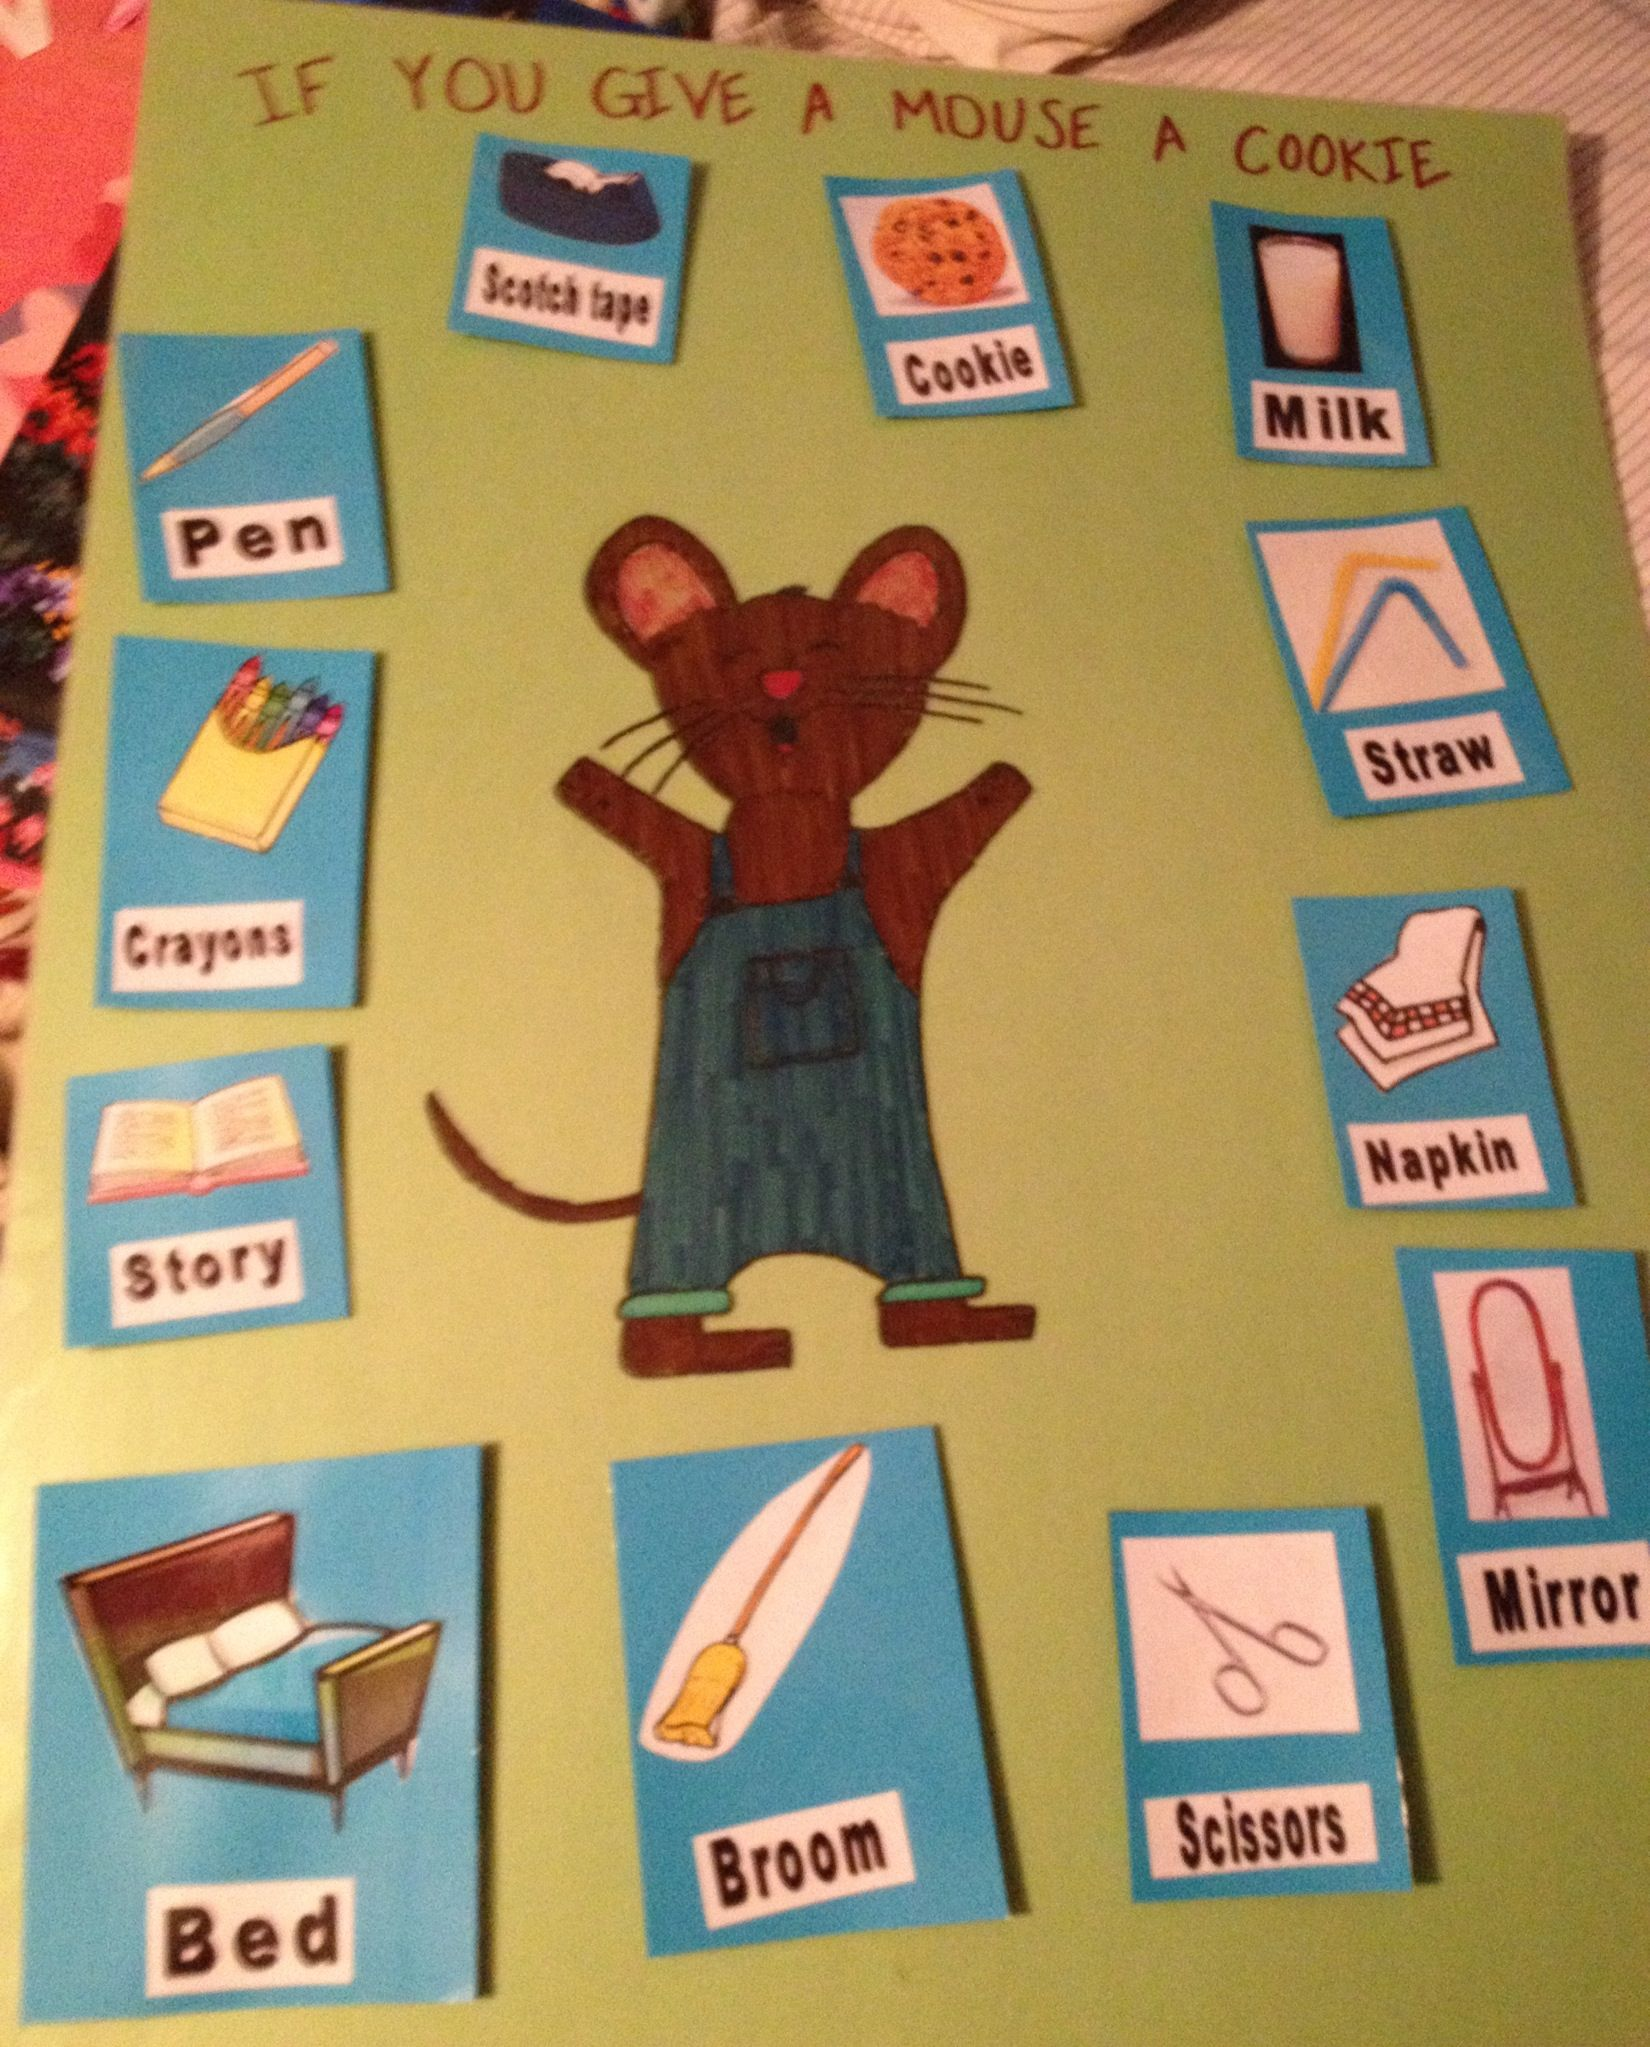 Teaching Cause And Effect With How To Give A Mouse A